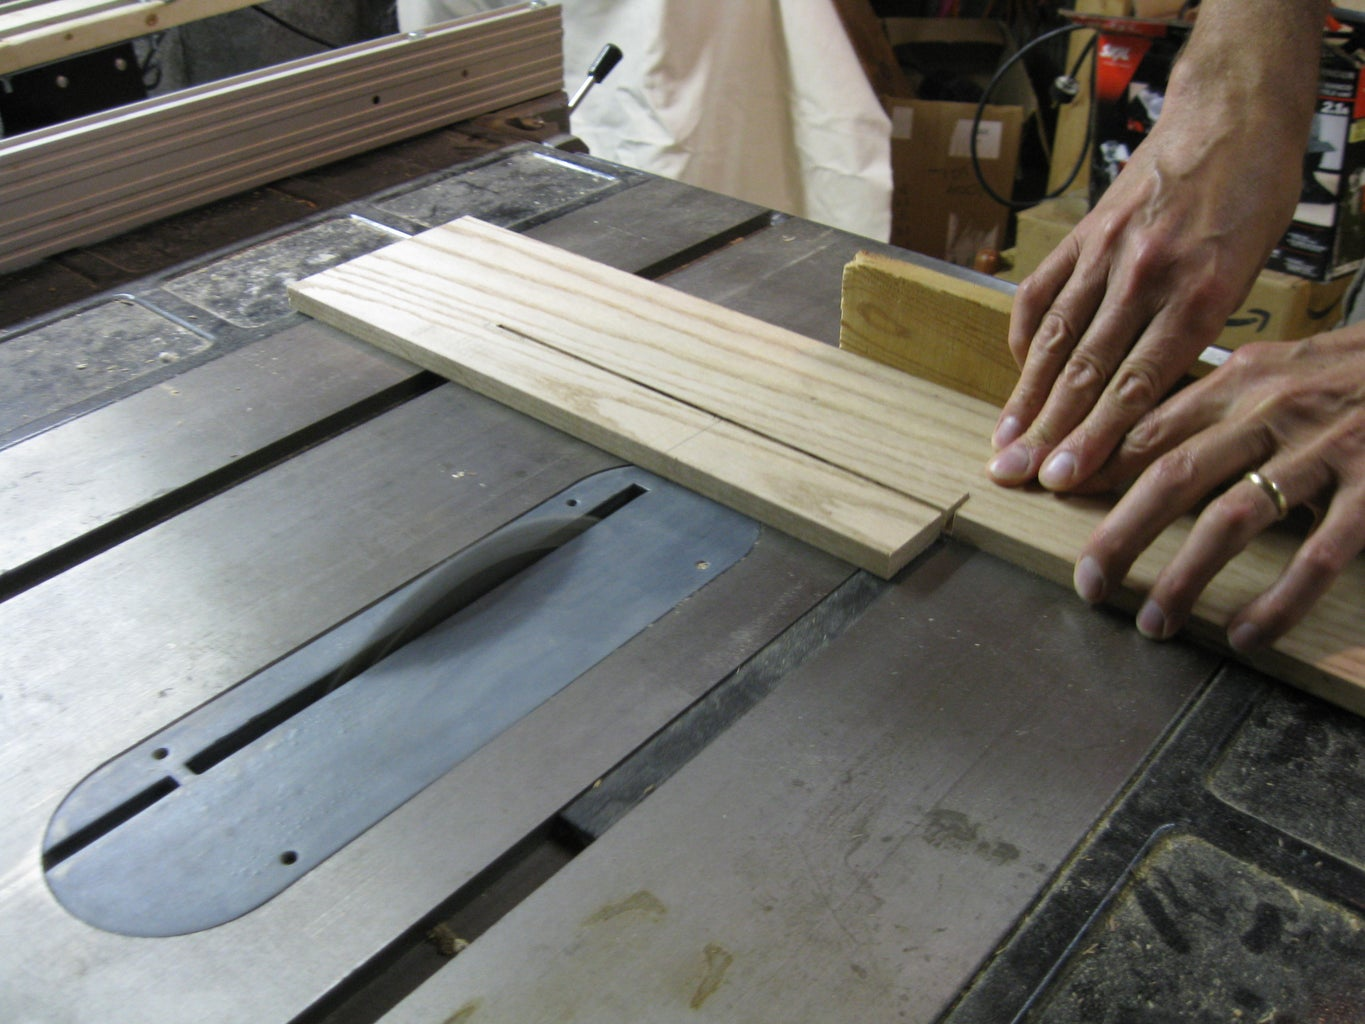 Making the Handle: Rough Cutting and Gluing